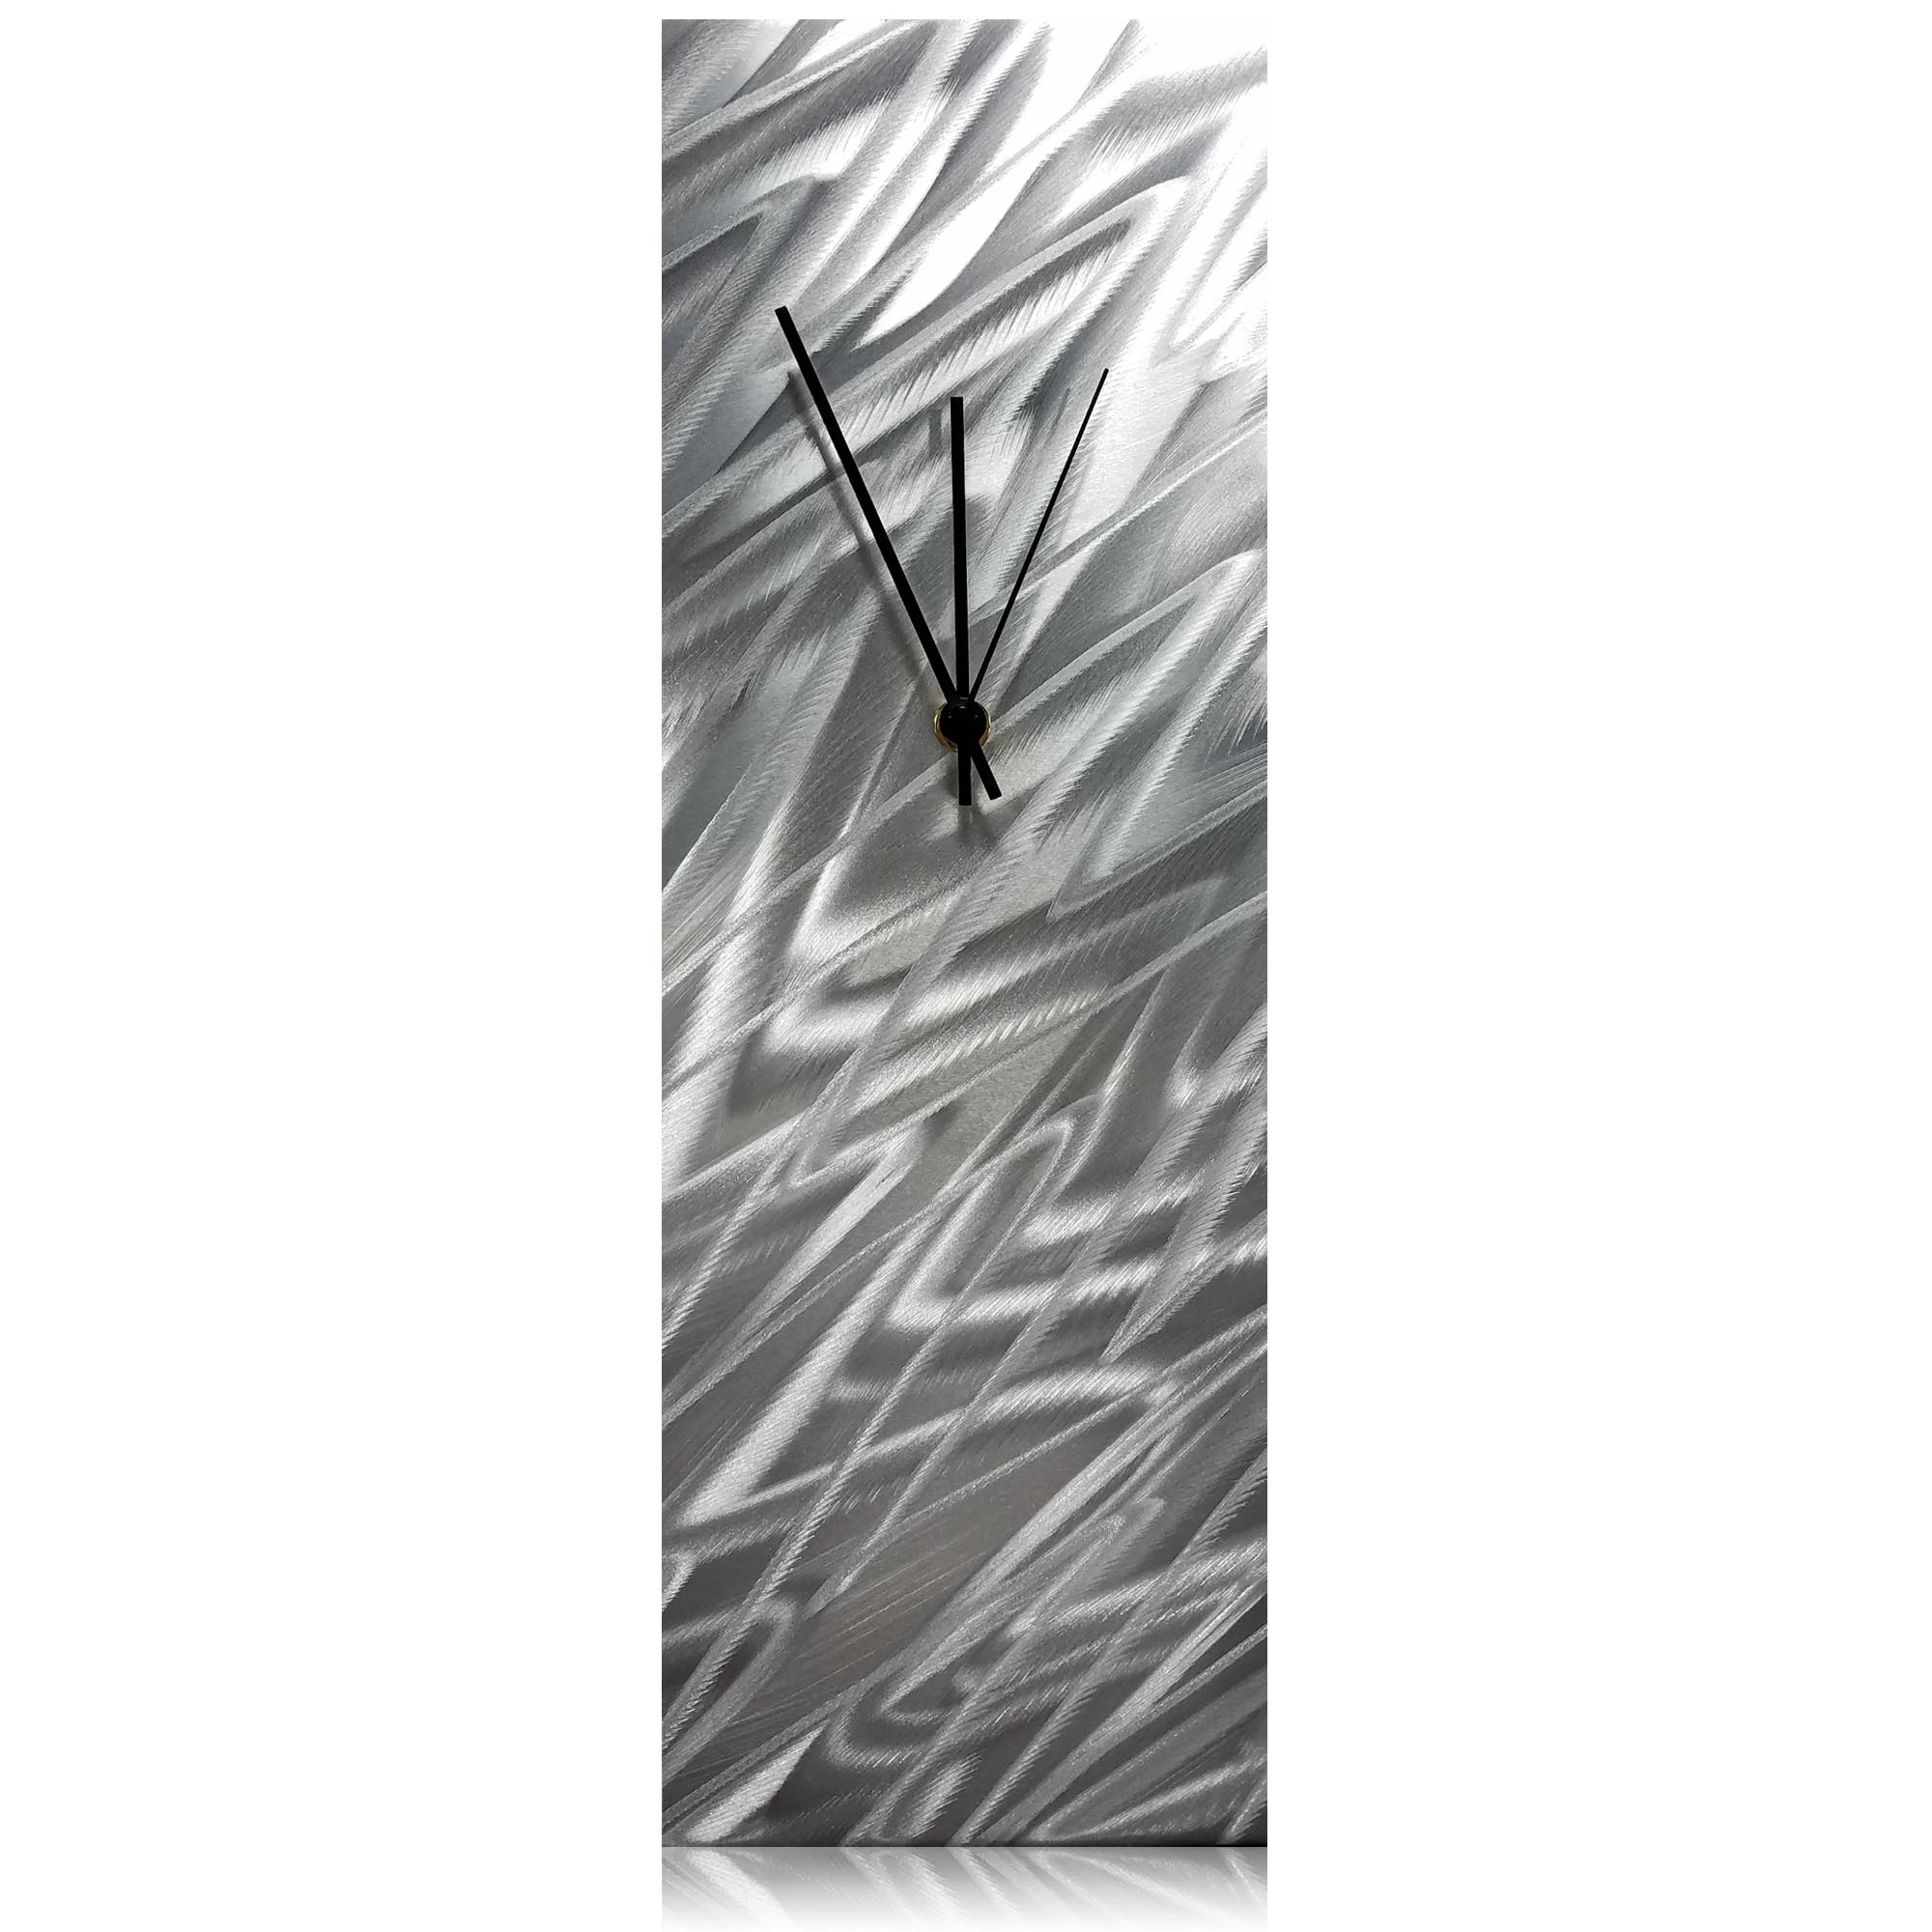 Silver Zig Zag Desk Clock 6x18in. Natural Aluminum